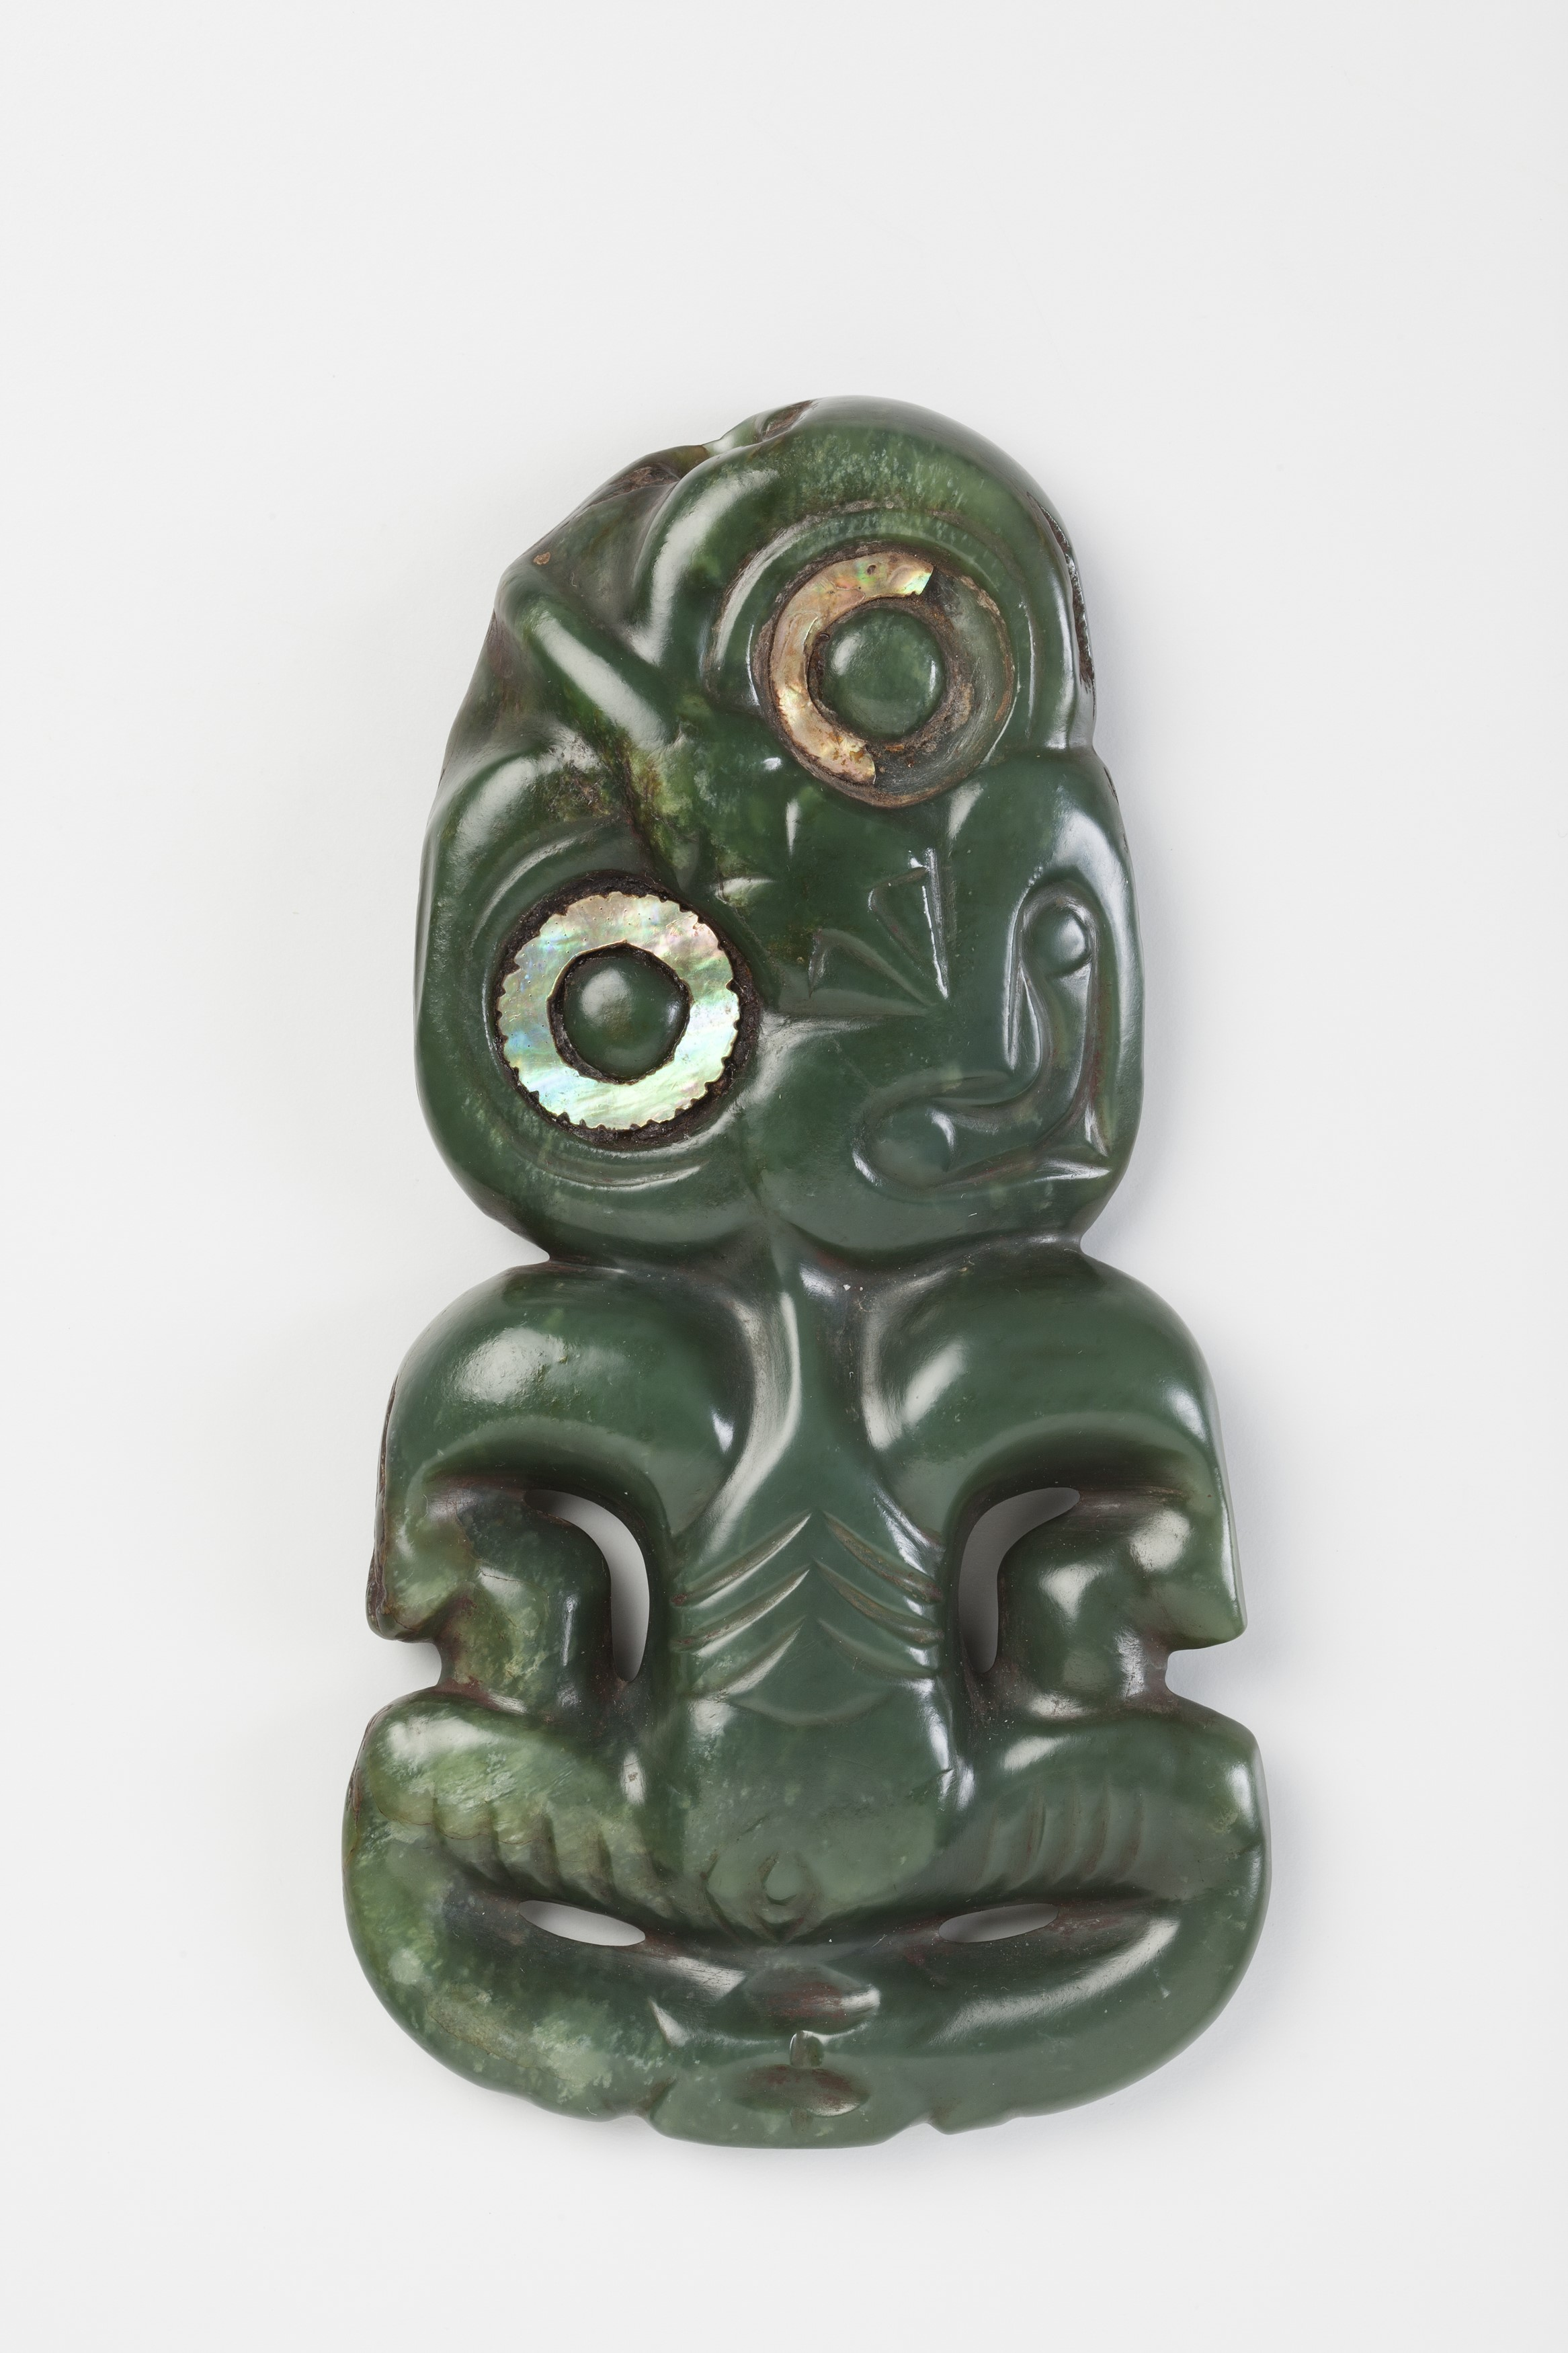 Pacific objects in focus new zealand hei tiki inside